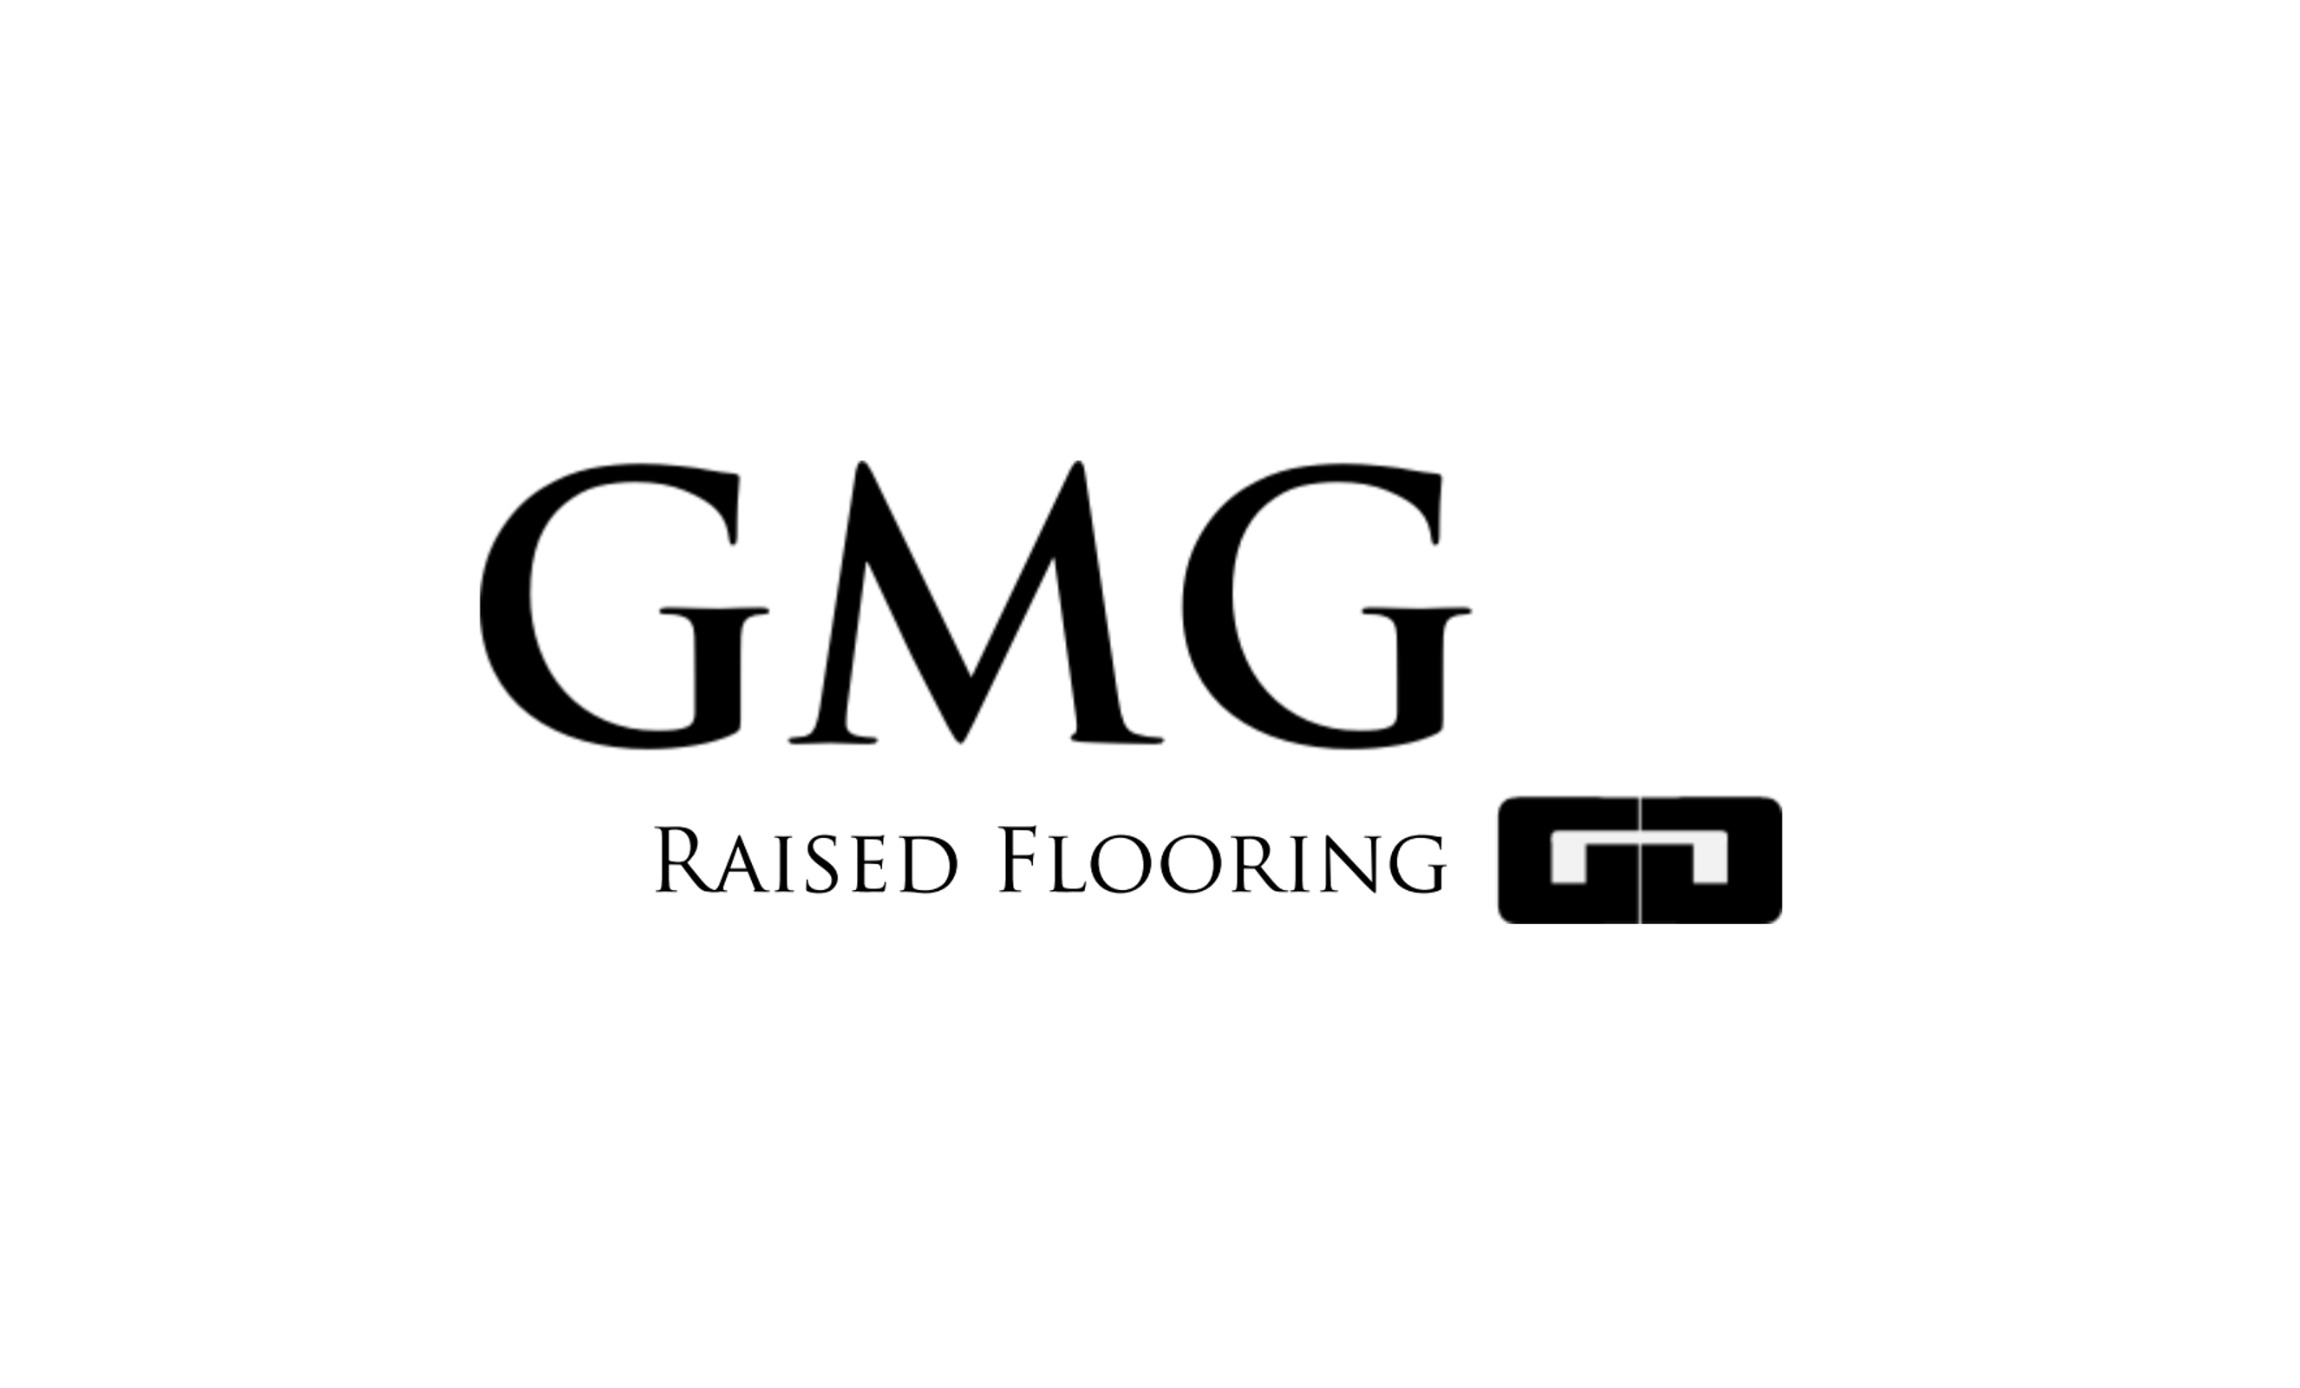 GMG RAISED FLOORING